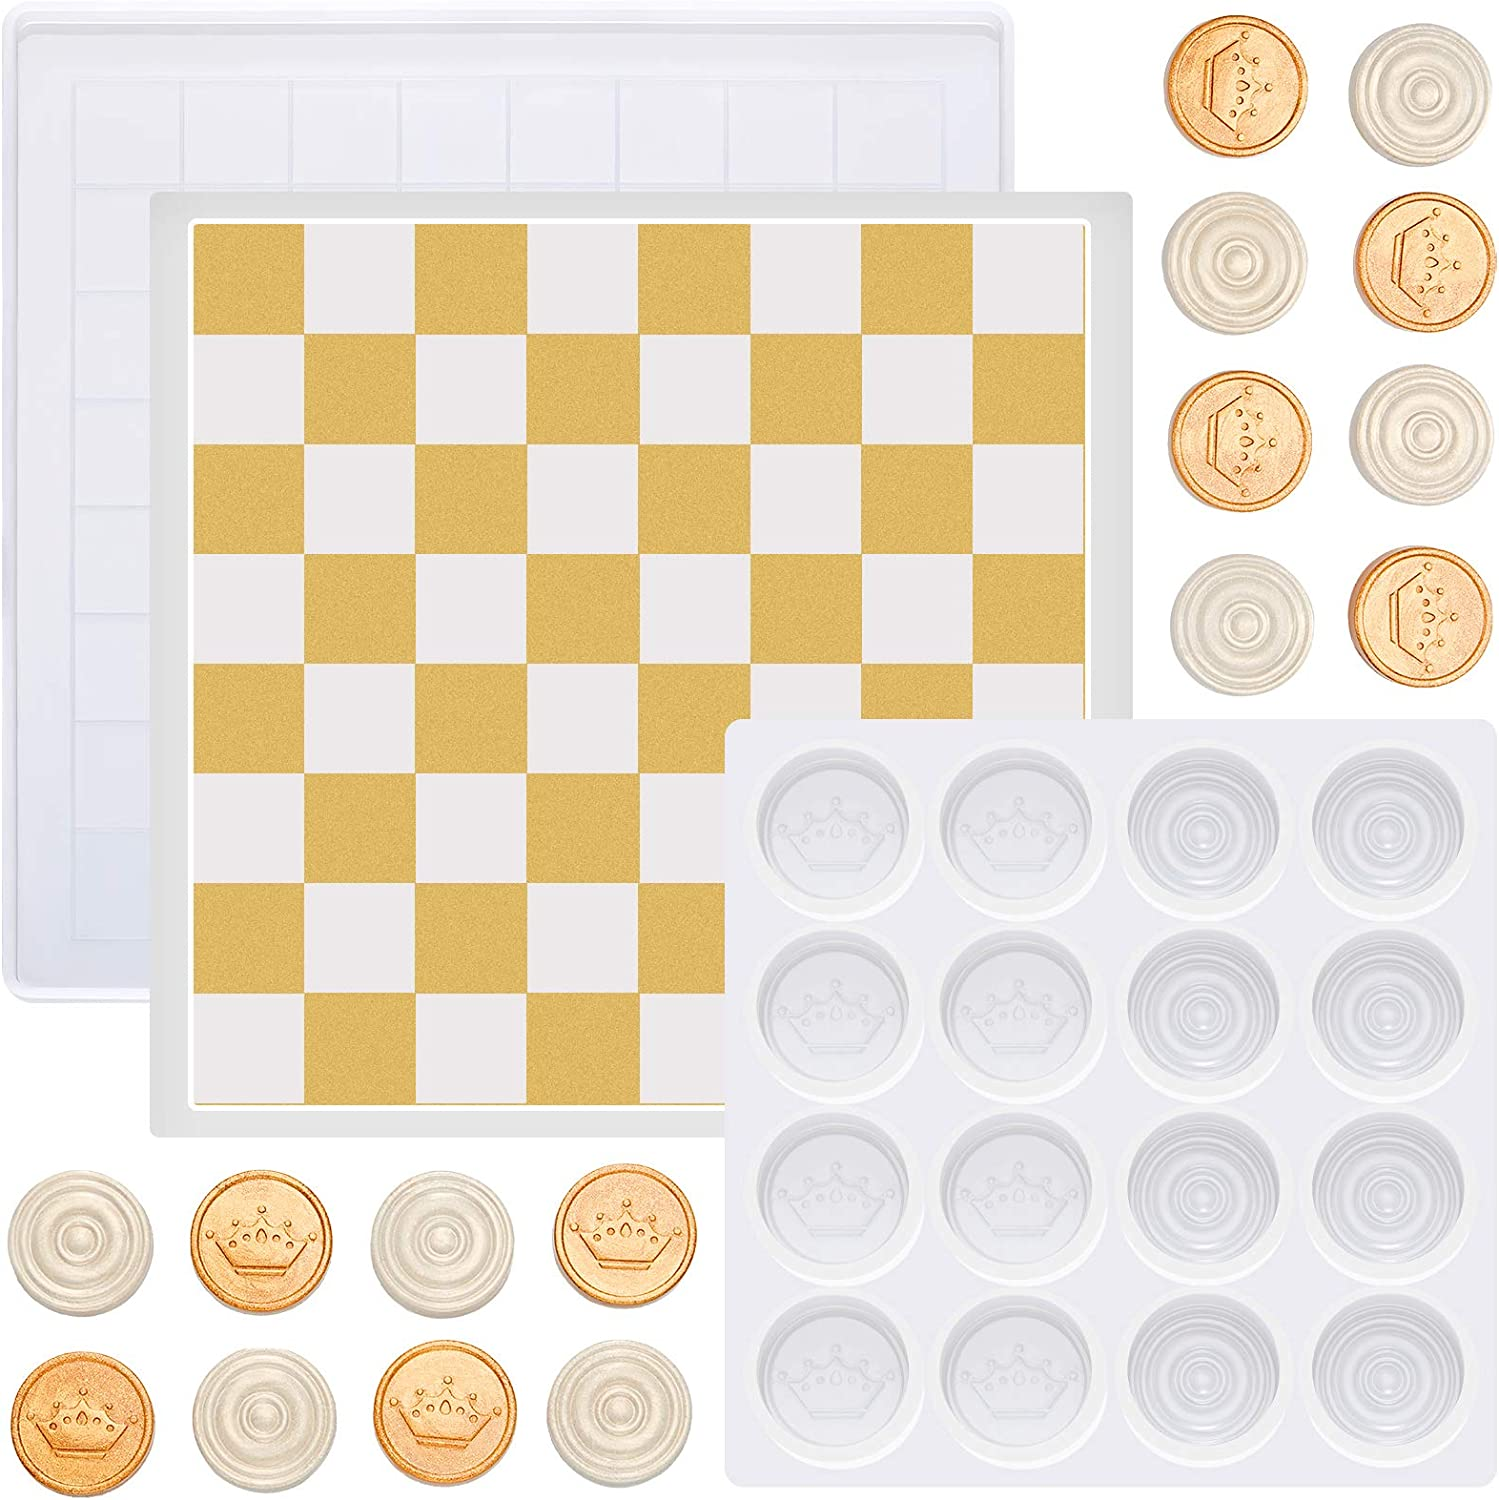 2 Pieces Chess Resin Molds Epoxy Silicone Set Board Max Memphis Mall 70% OFF